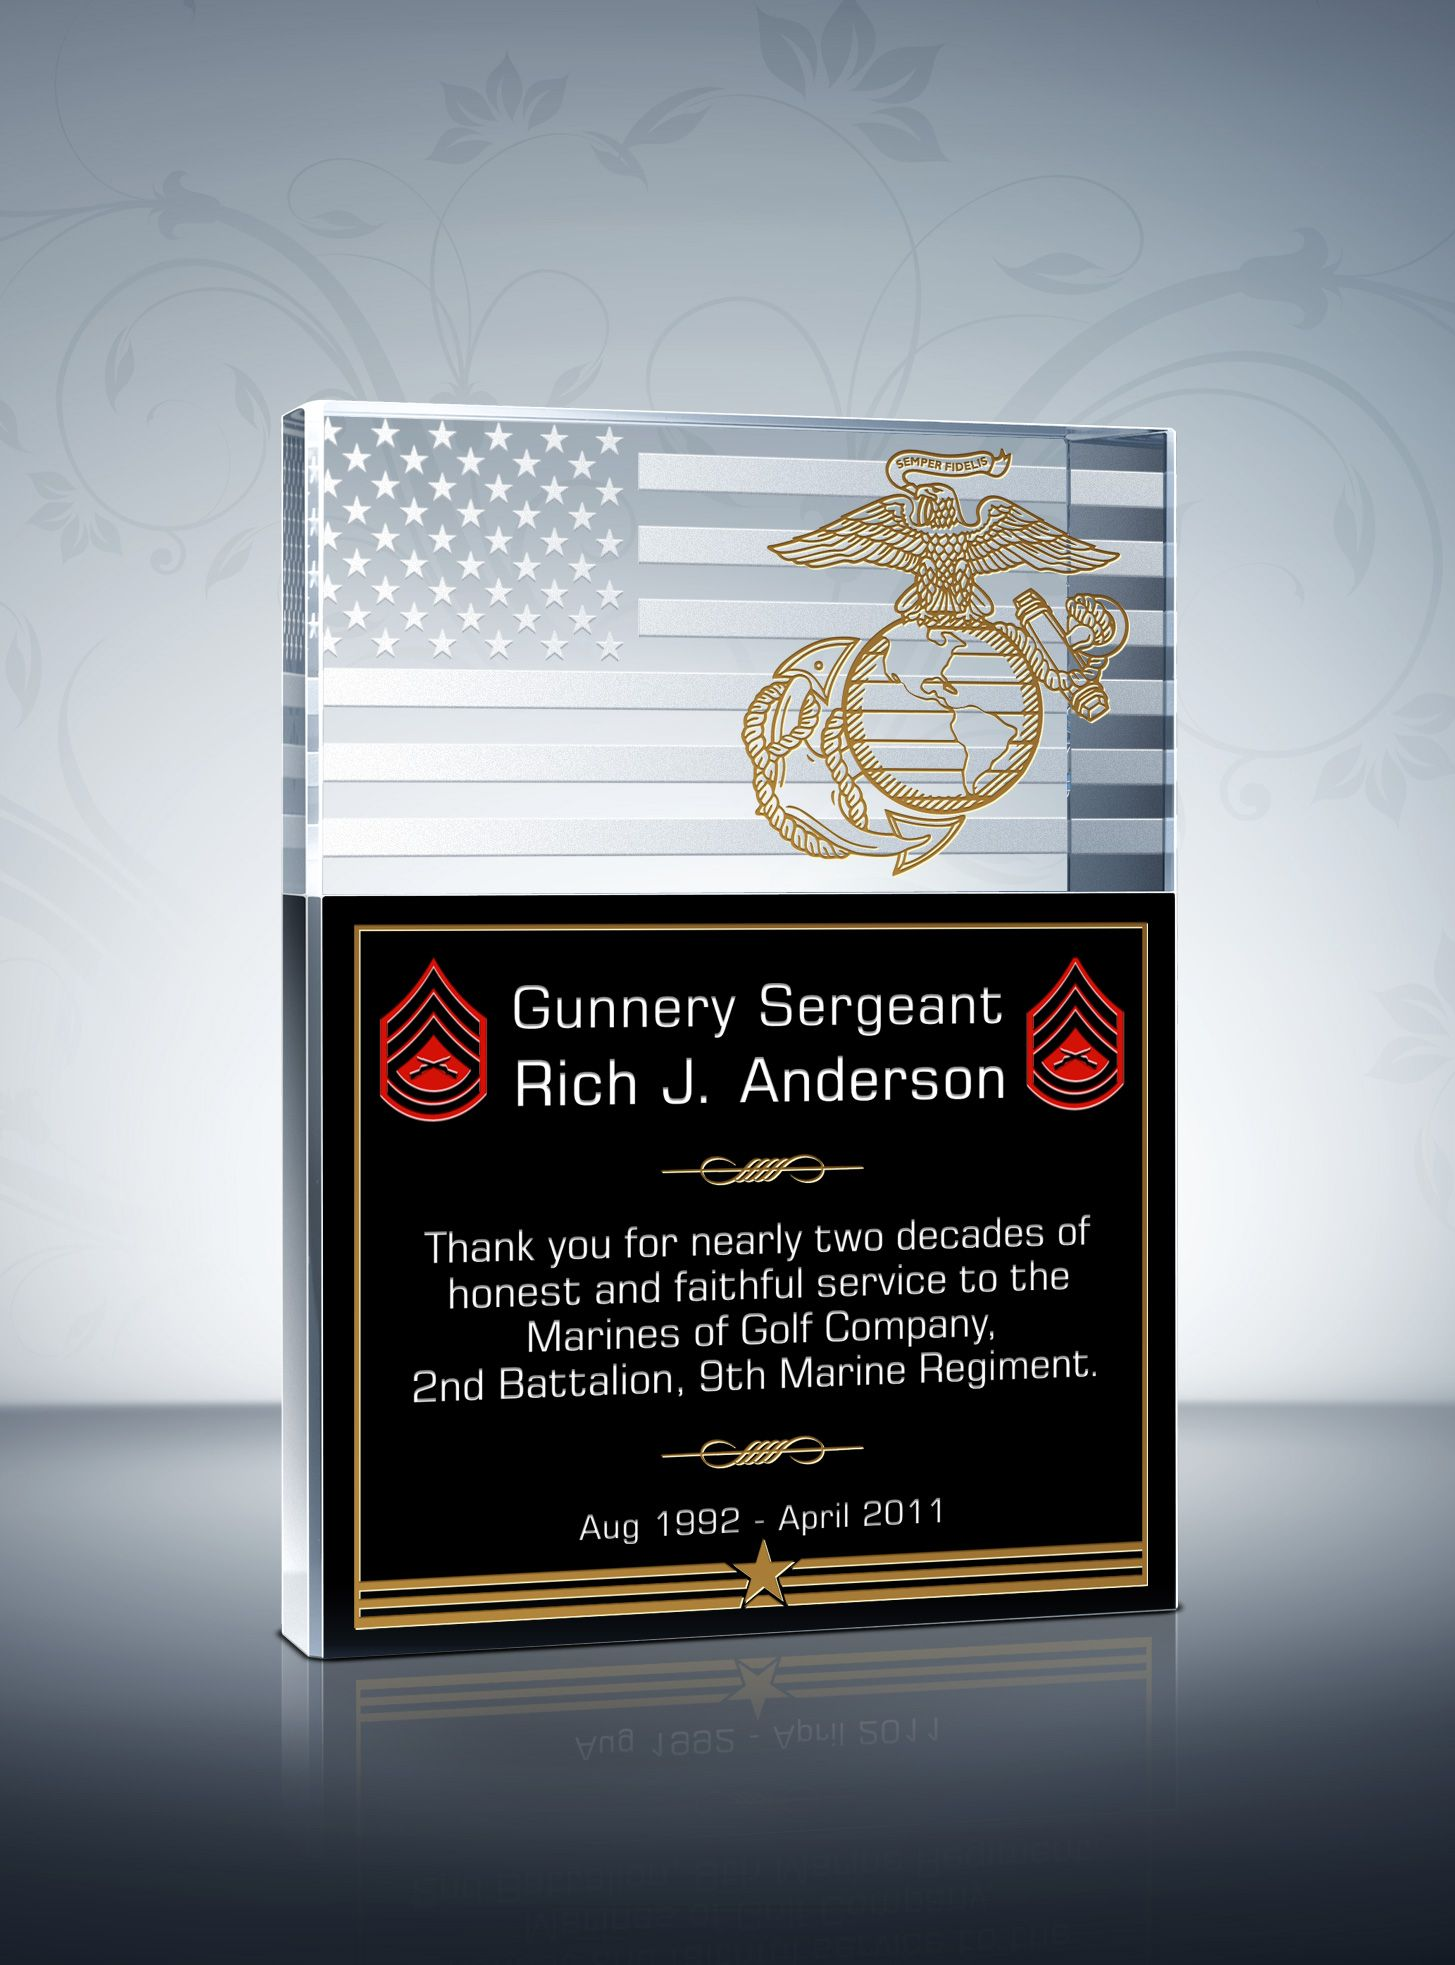 Unique military service plaques and thank you quotes with